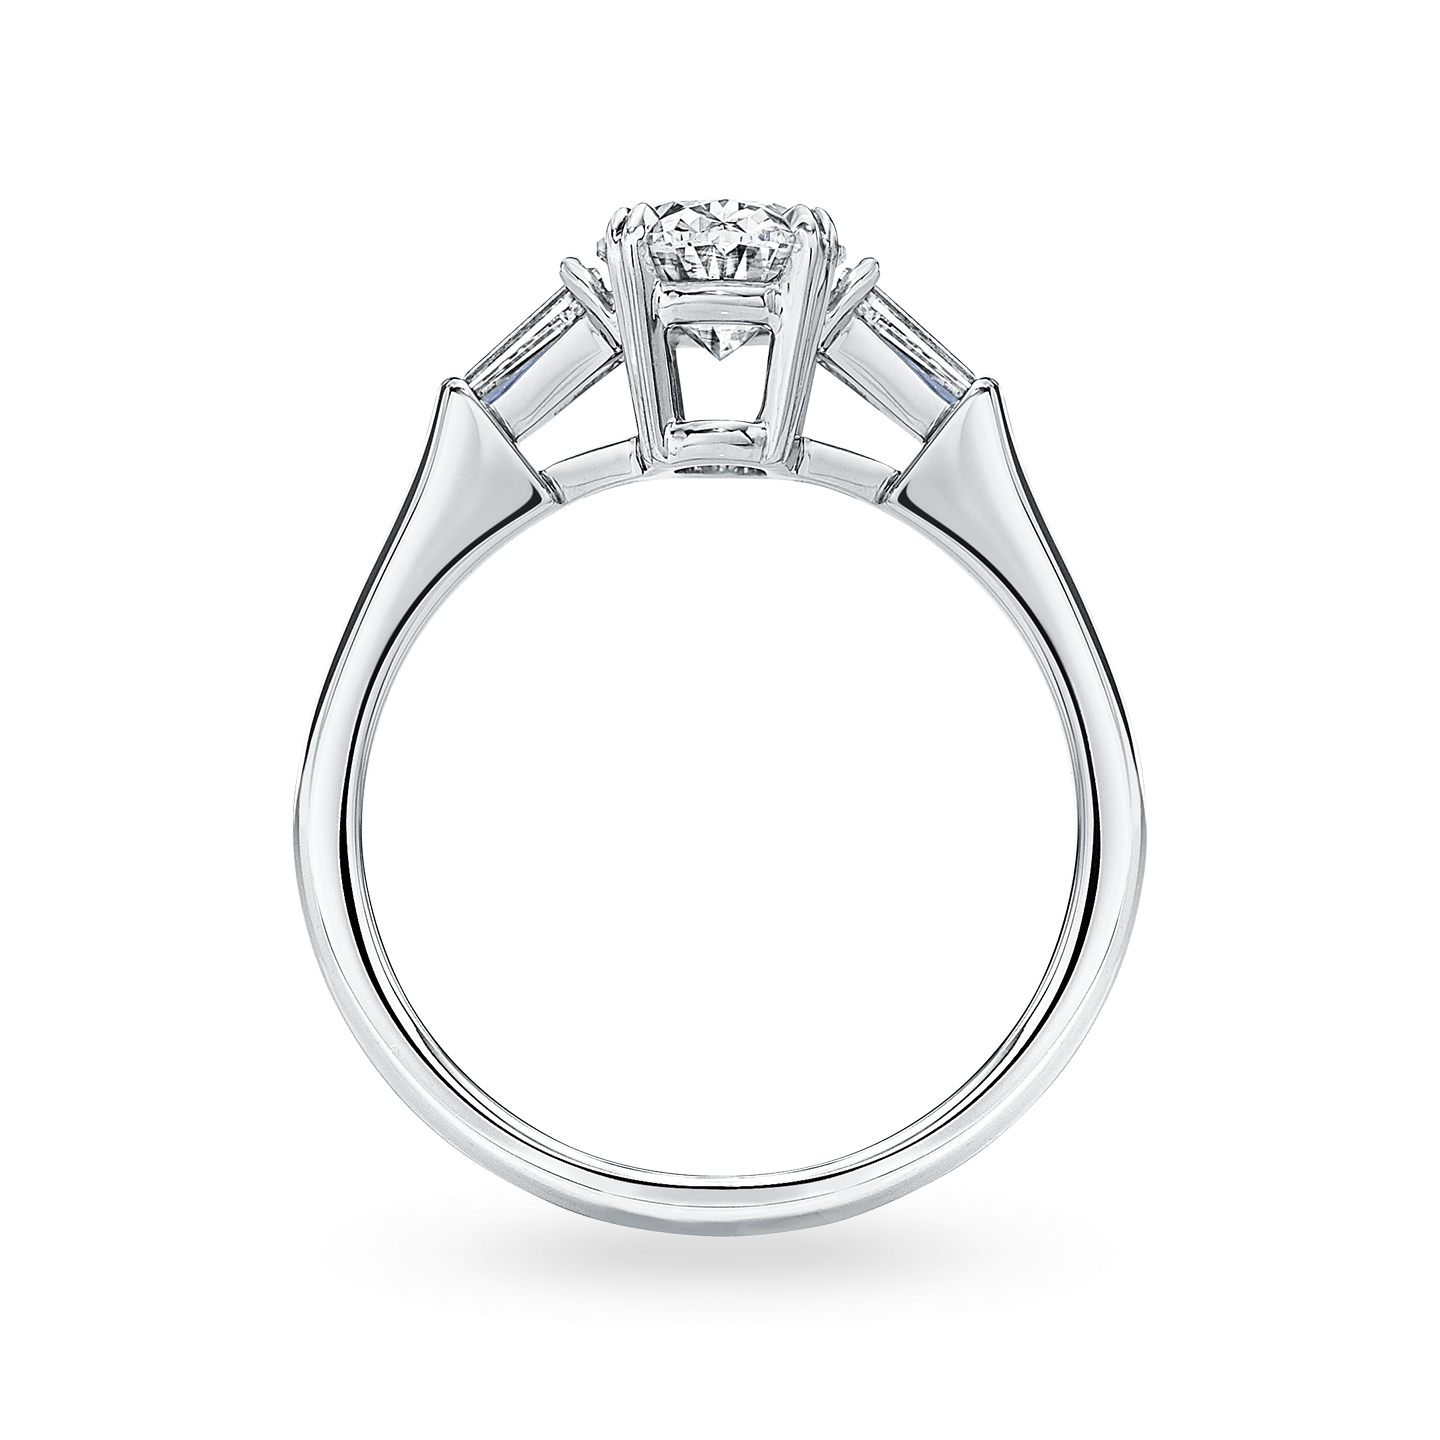 Classic Winston Oval-Shaped Engagement Ring with Tapered Baguette Side Stones, Product Image 2